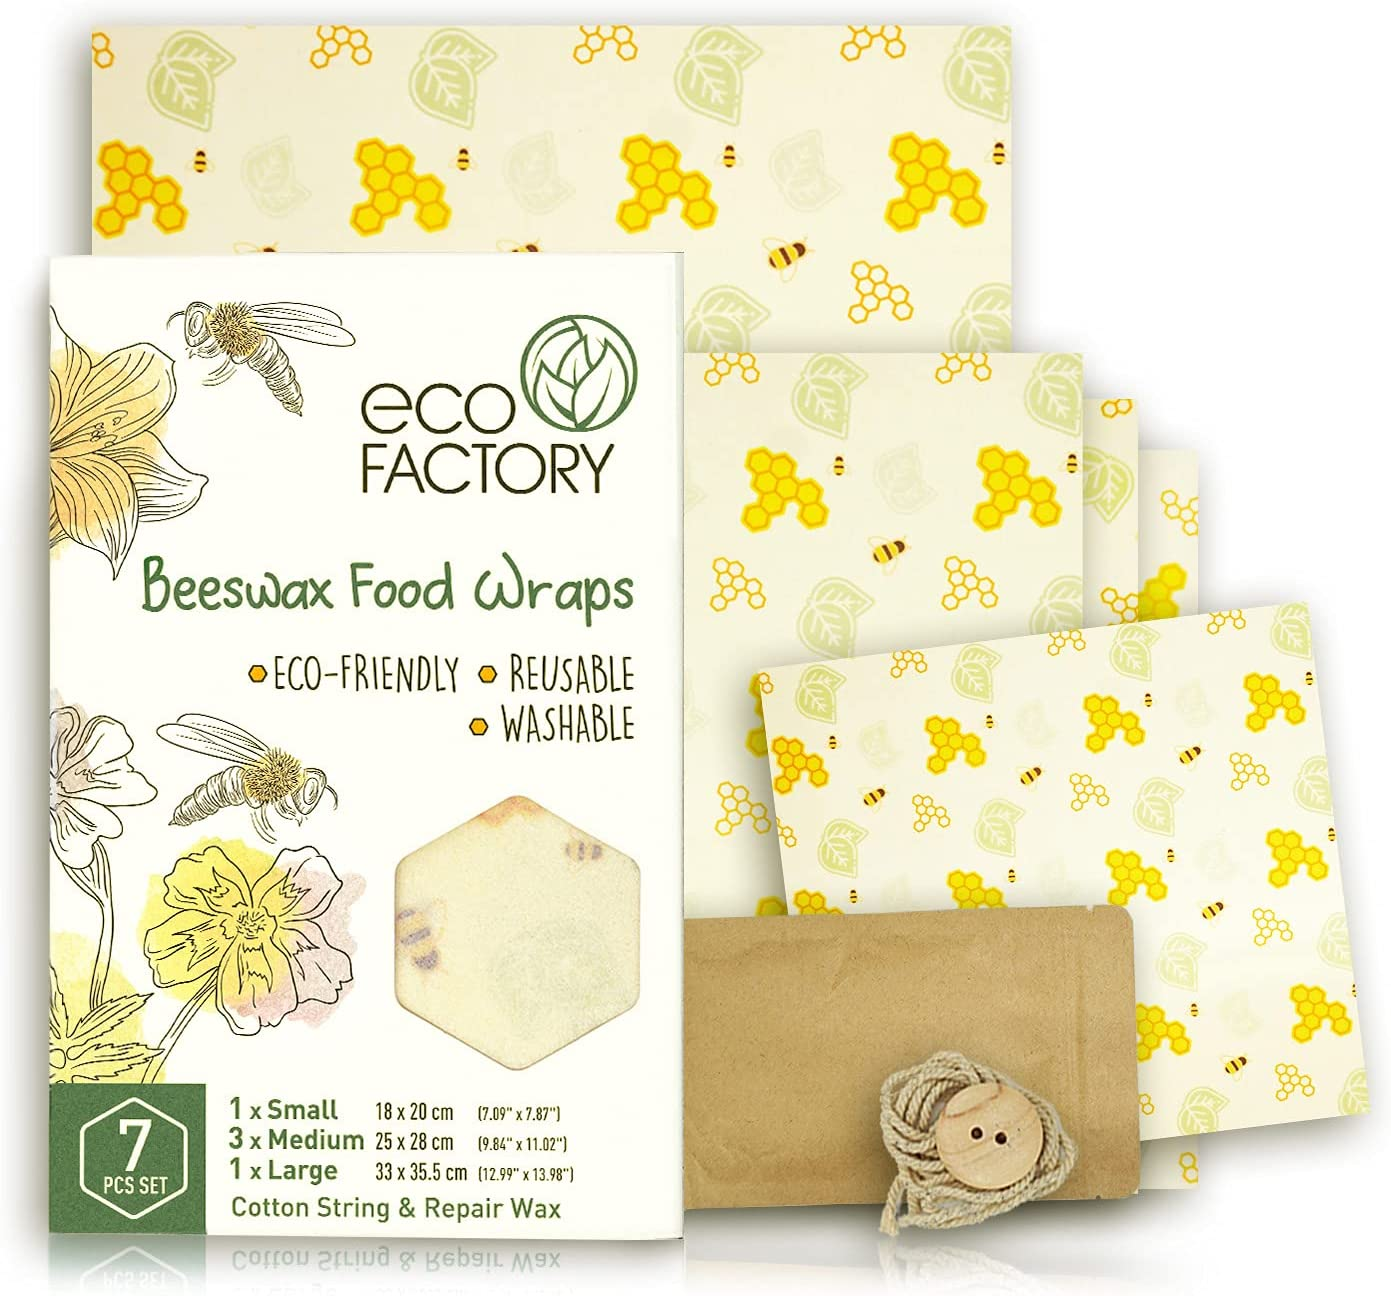 ECO FACTORY Beeswax Food Wraps Set of 5 incl. Accessories - All-Natural Wrap for Food Storage - Wax Wrap - Bowl Covers - Beeswax Paper - Organic, Reusable, Washable and Sustainable - Certified